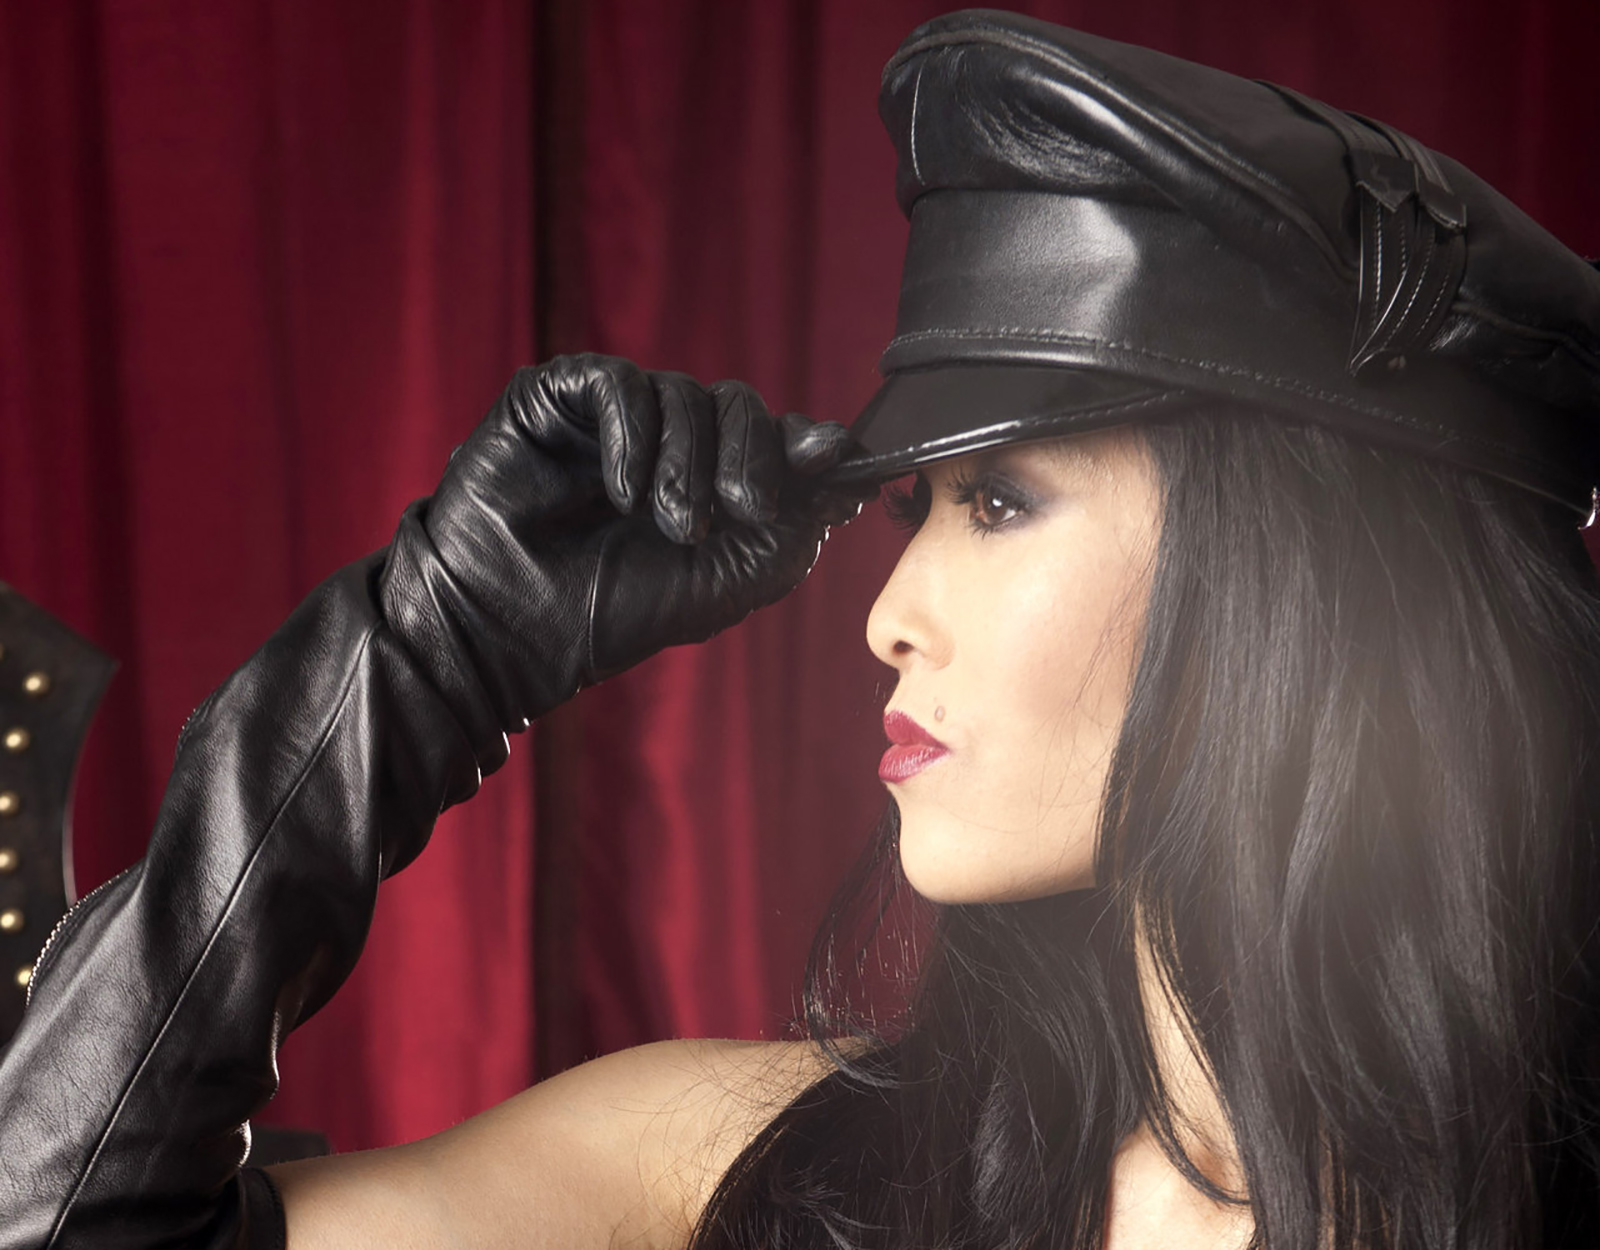 a profile of an Asian dominatrix with long black hair who's wearing red lipstick and a black hat